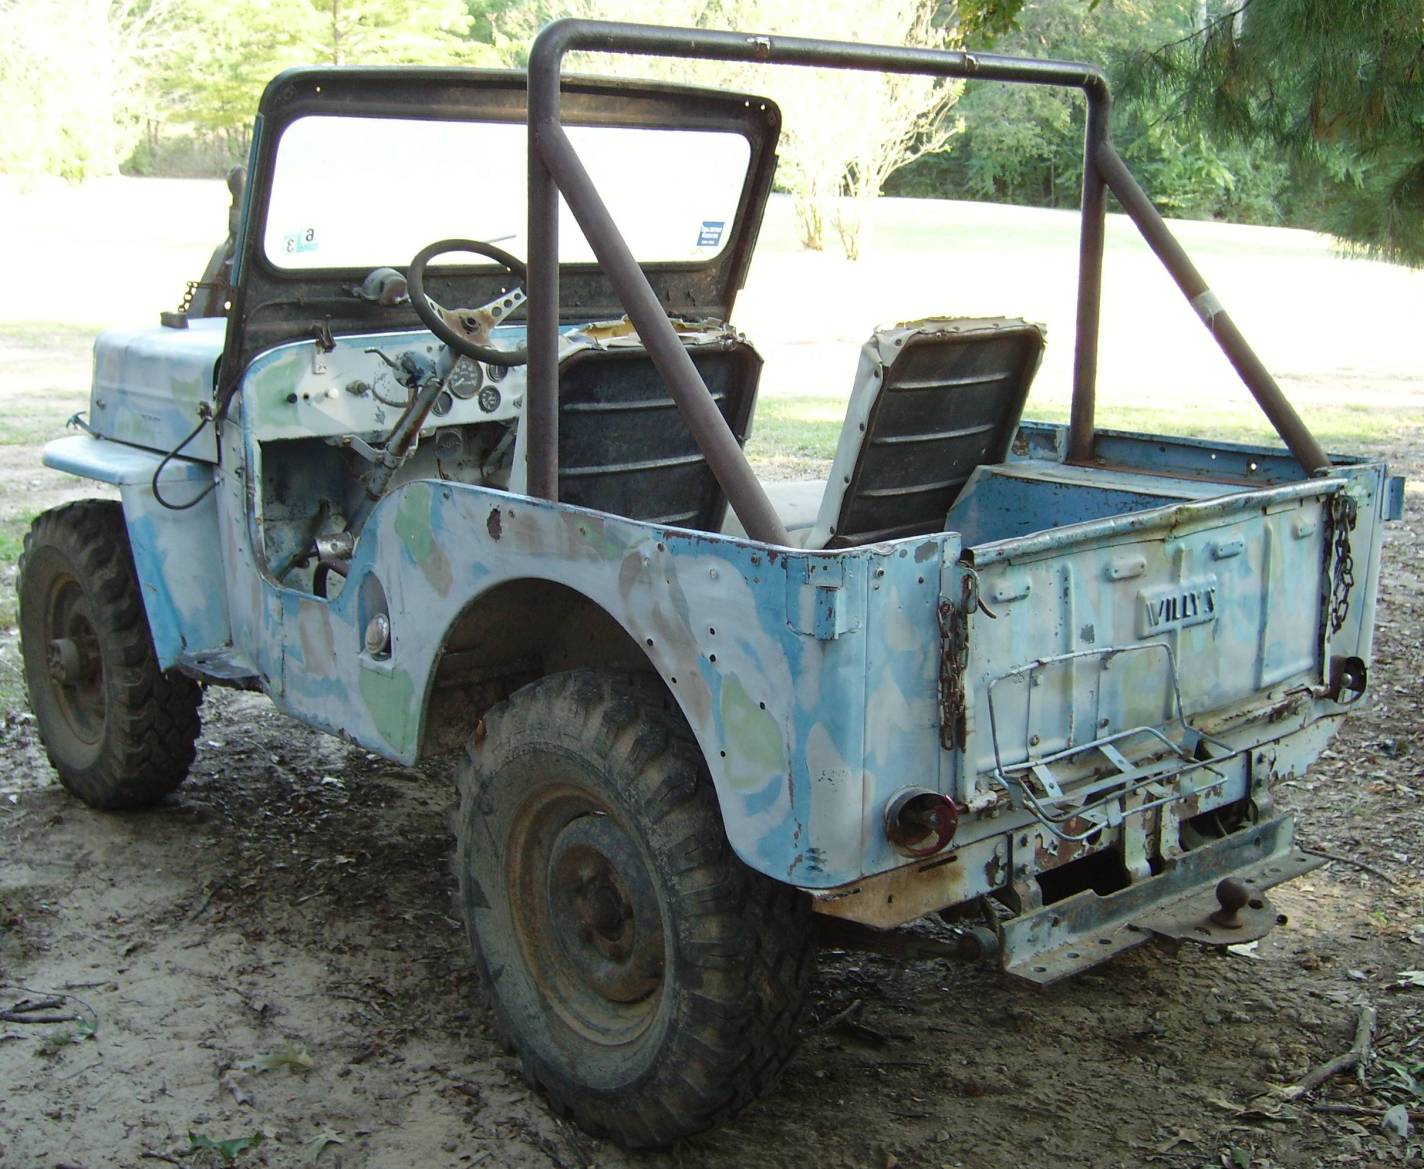 jeep willys cj3a restoration and replacement parts and